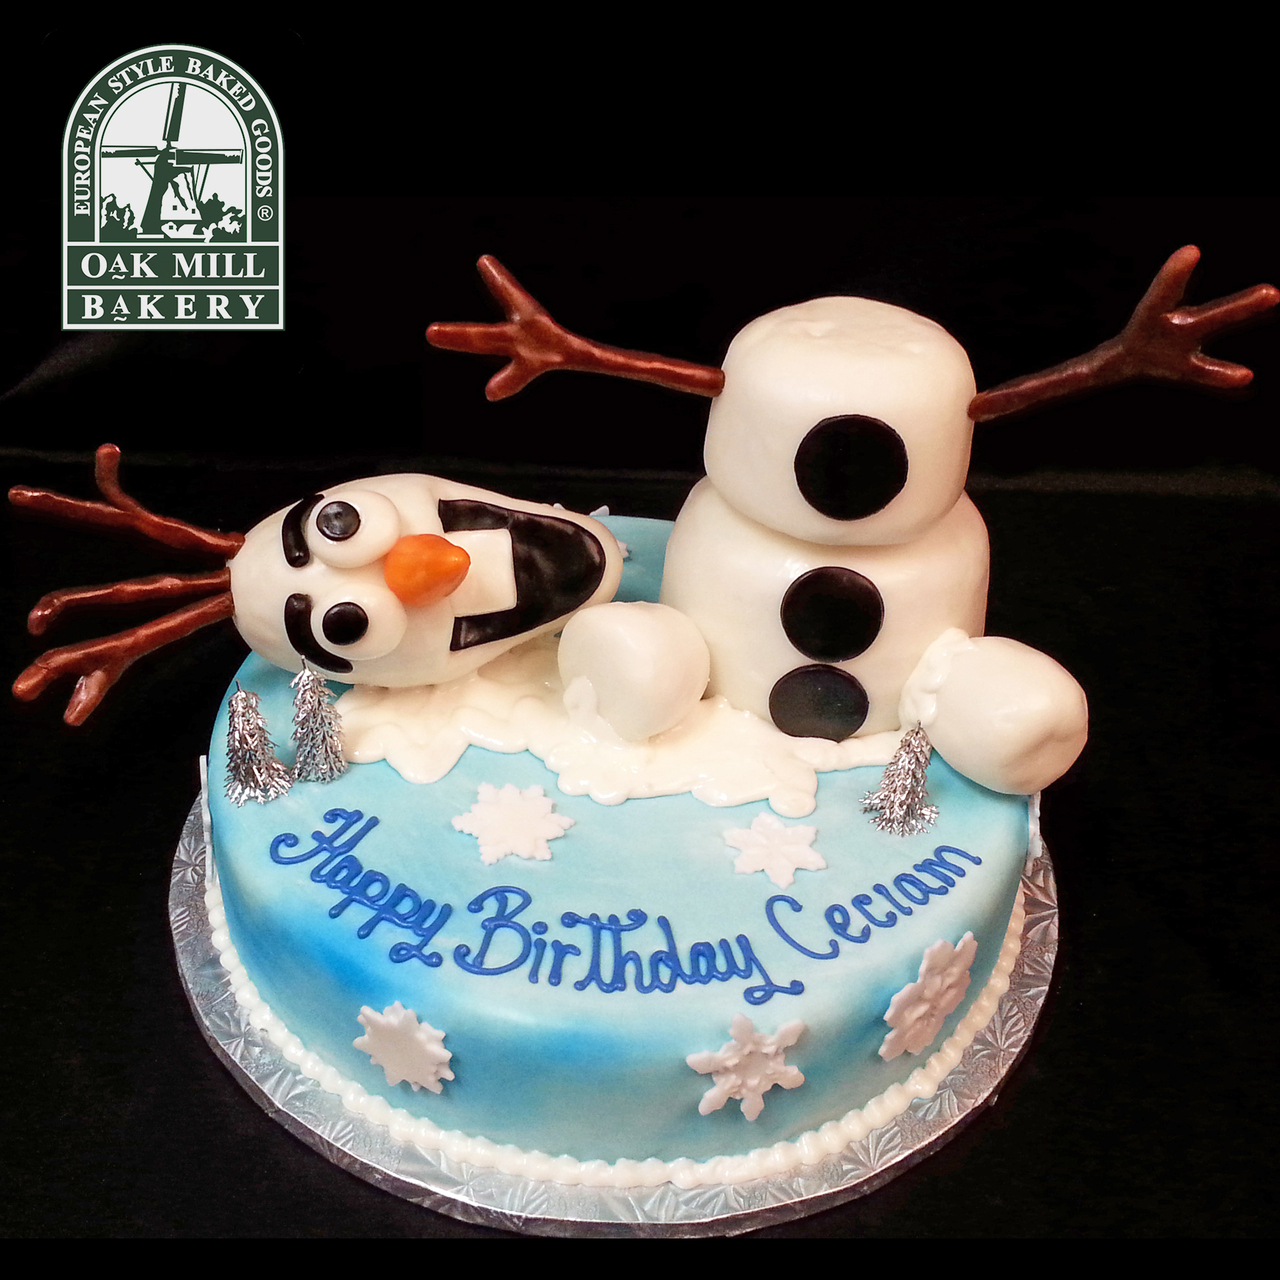 Melted Olaf Face Cake Design